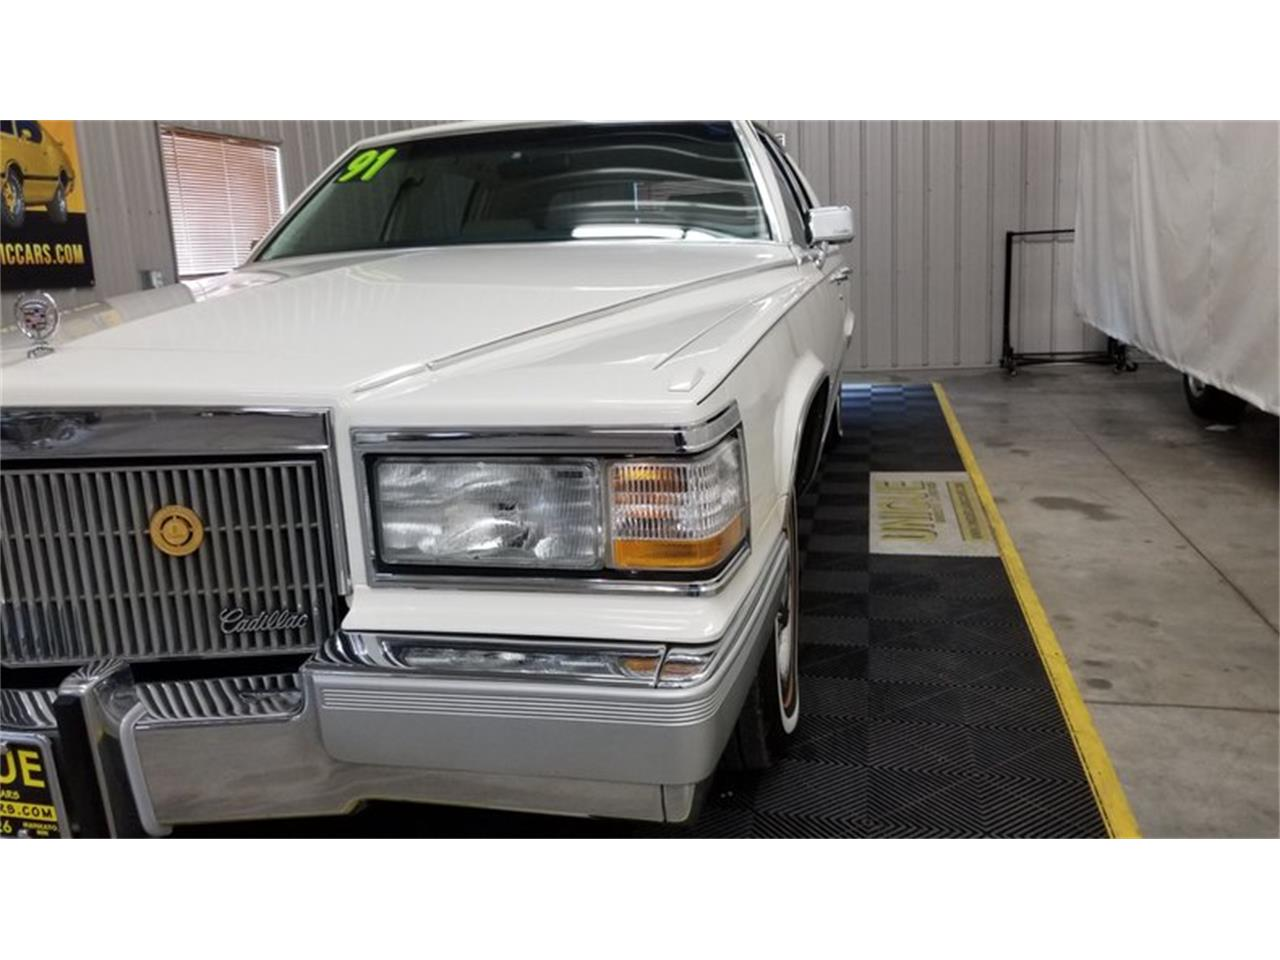 1991 Cadillac Brougham for sale in Mankato, MN – photo 8